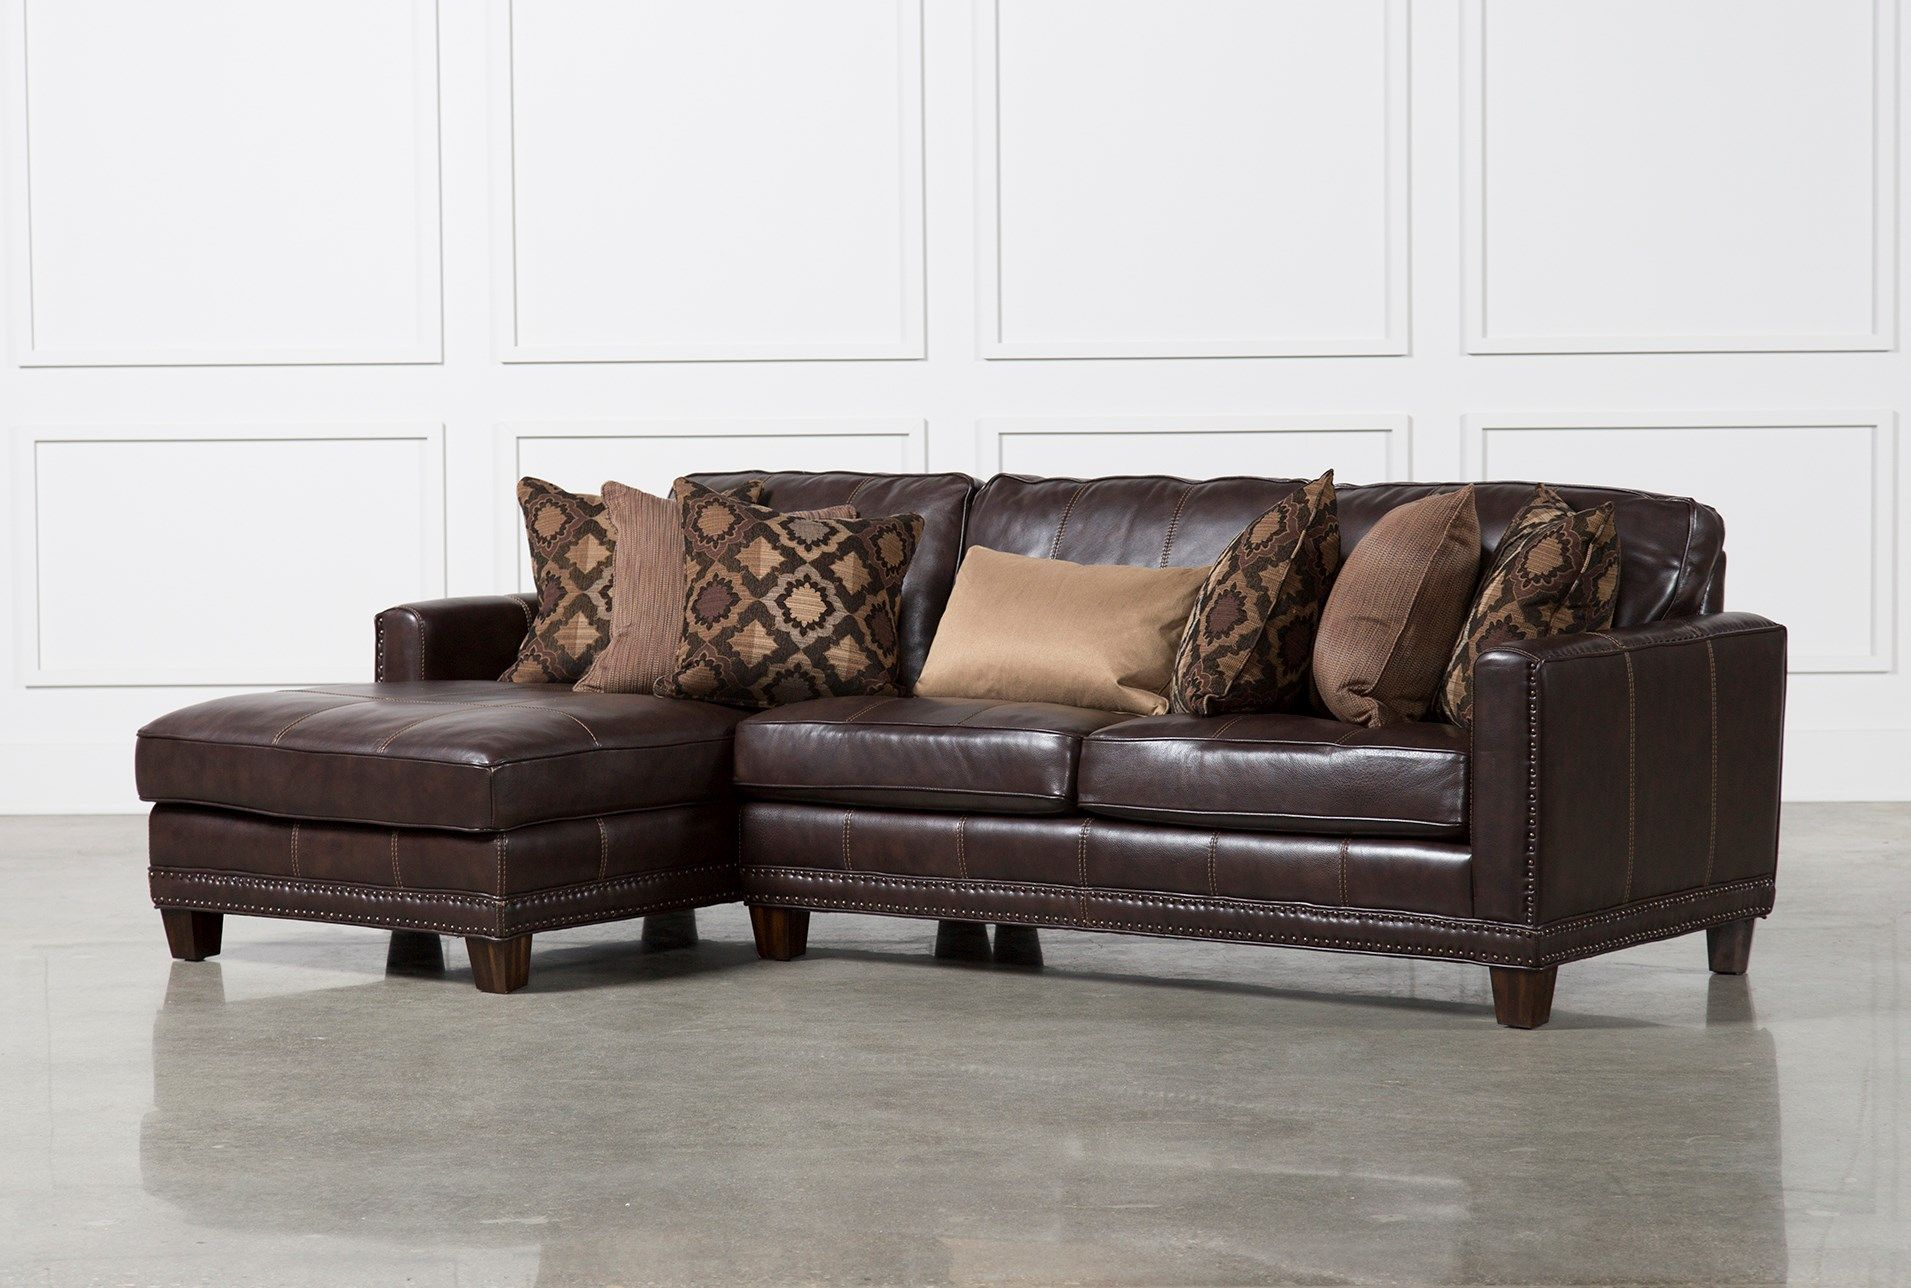 Swell Barnaby 2 Piece Sectional W Laf Chaise Living Spaces Beatyapartments Chair Design Images Beatyapartmentscom